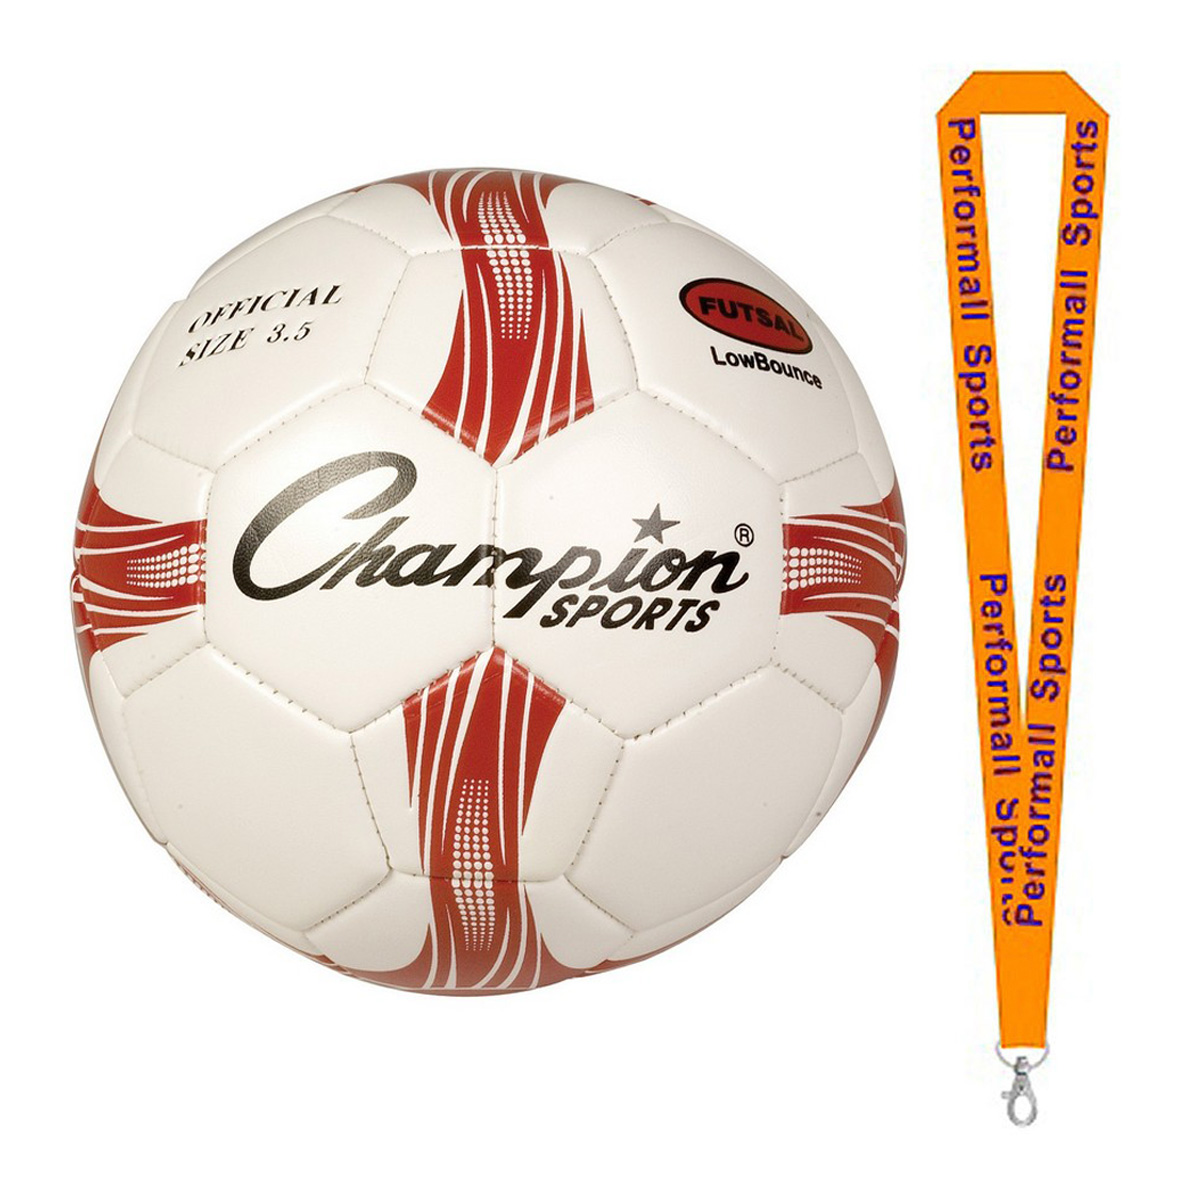 Champion Sports Bundle: Size 4 Futsal Soccer Ball Red / Black / White with 1 Performall Lanyard FTS3-1P